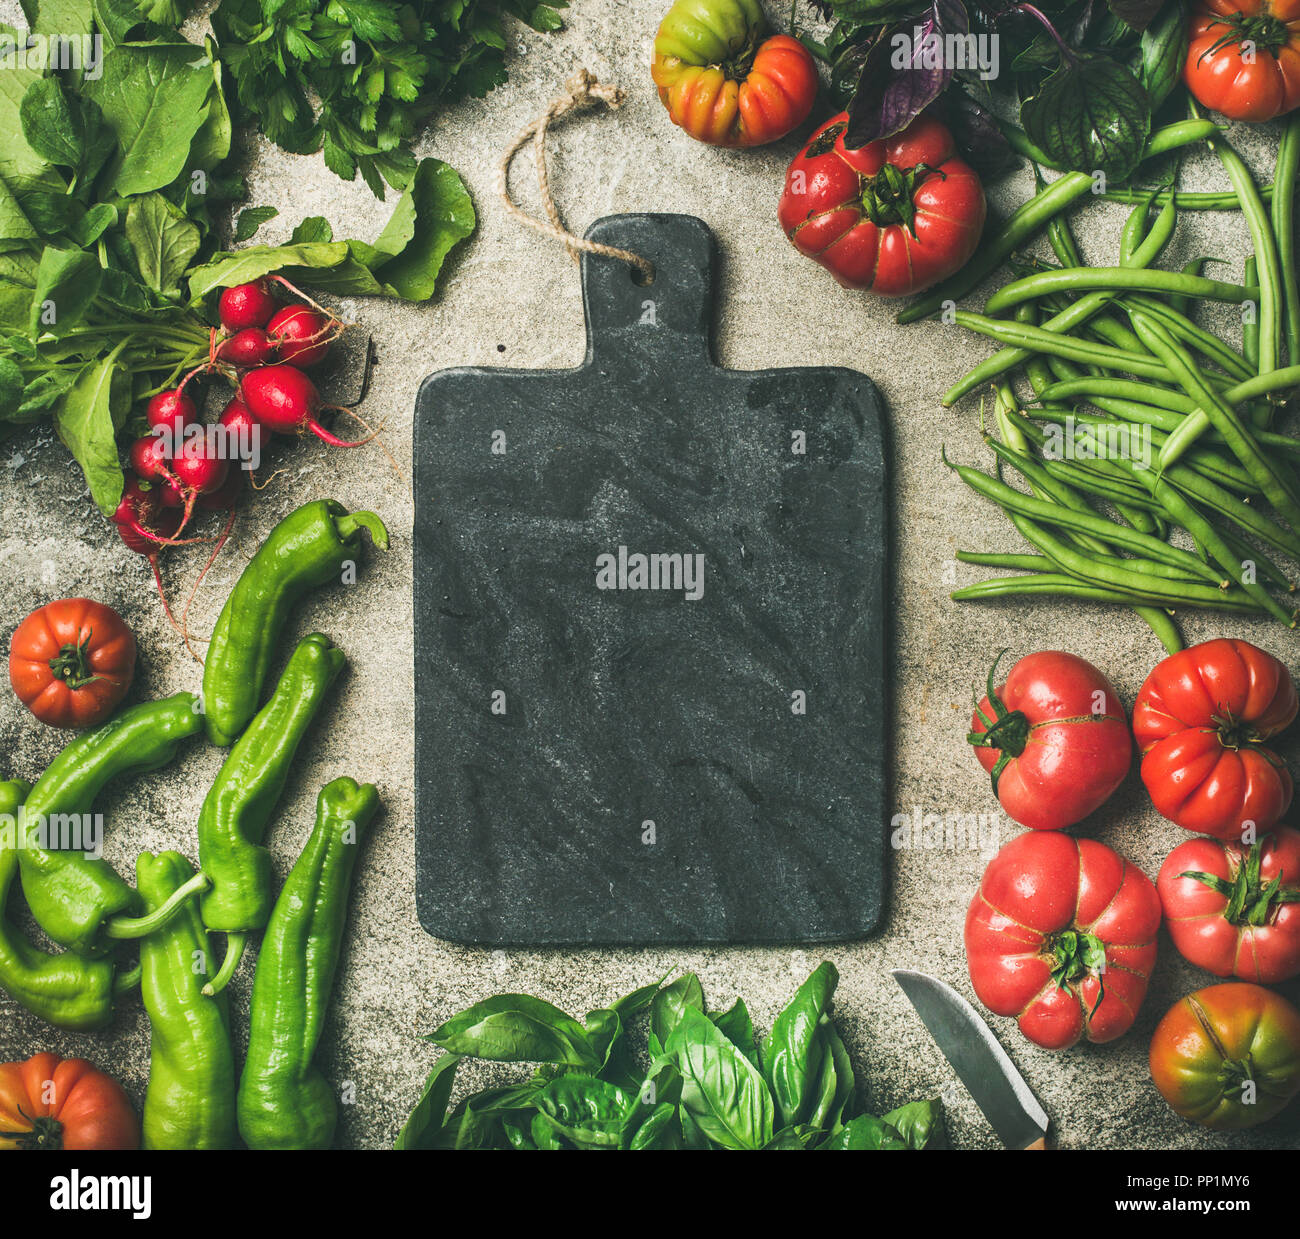 Healthy food background with seasonal vegetables and greens, copy space - Stock Image